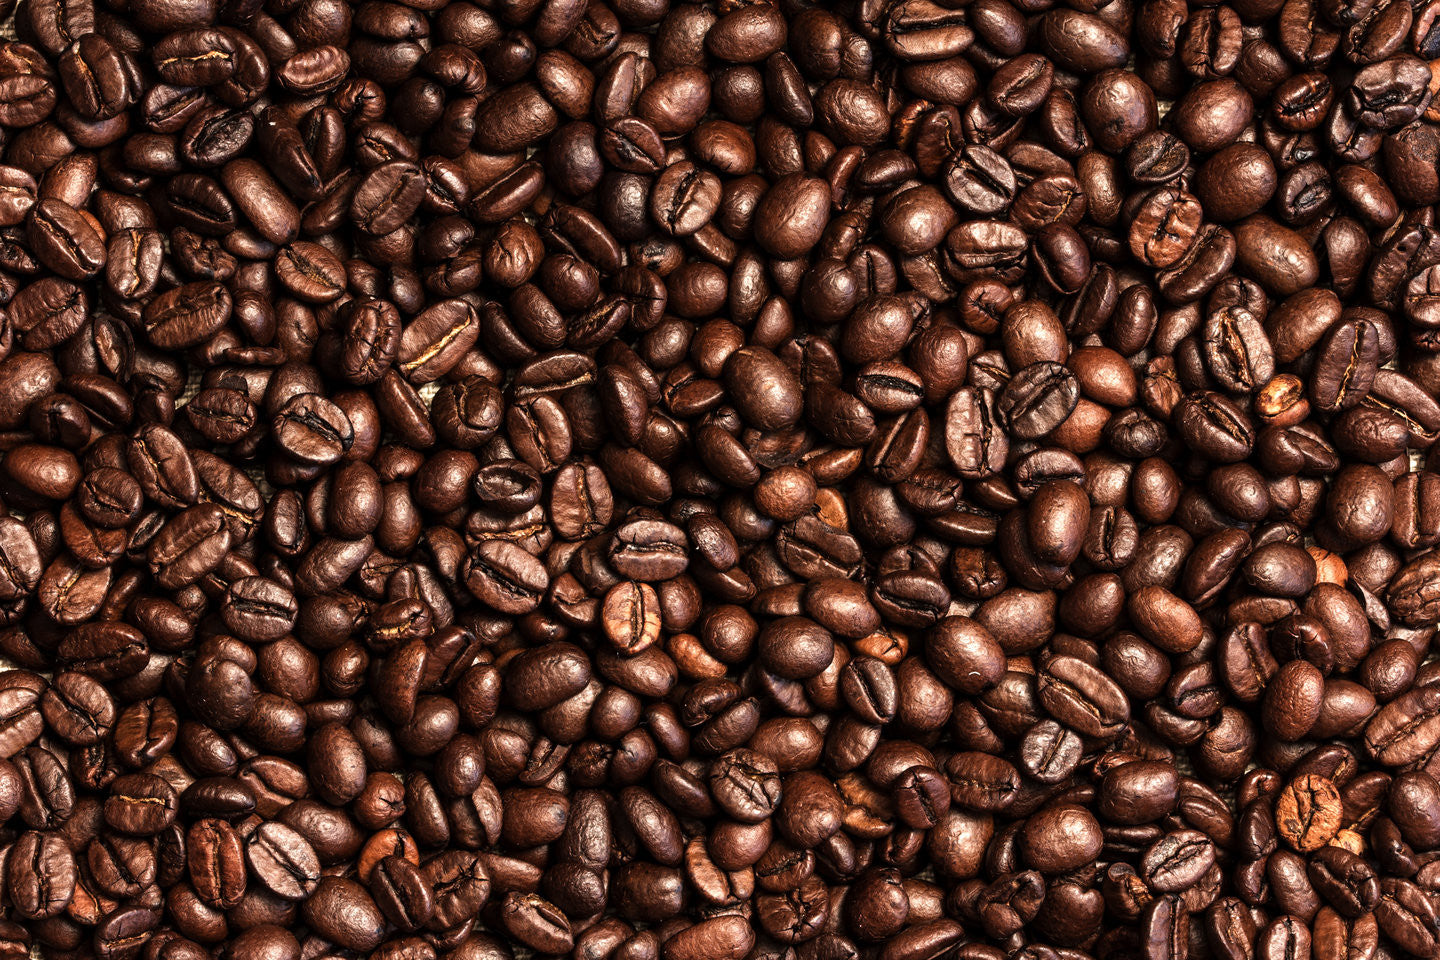 10 great coffee facts that we absolutely love!